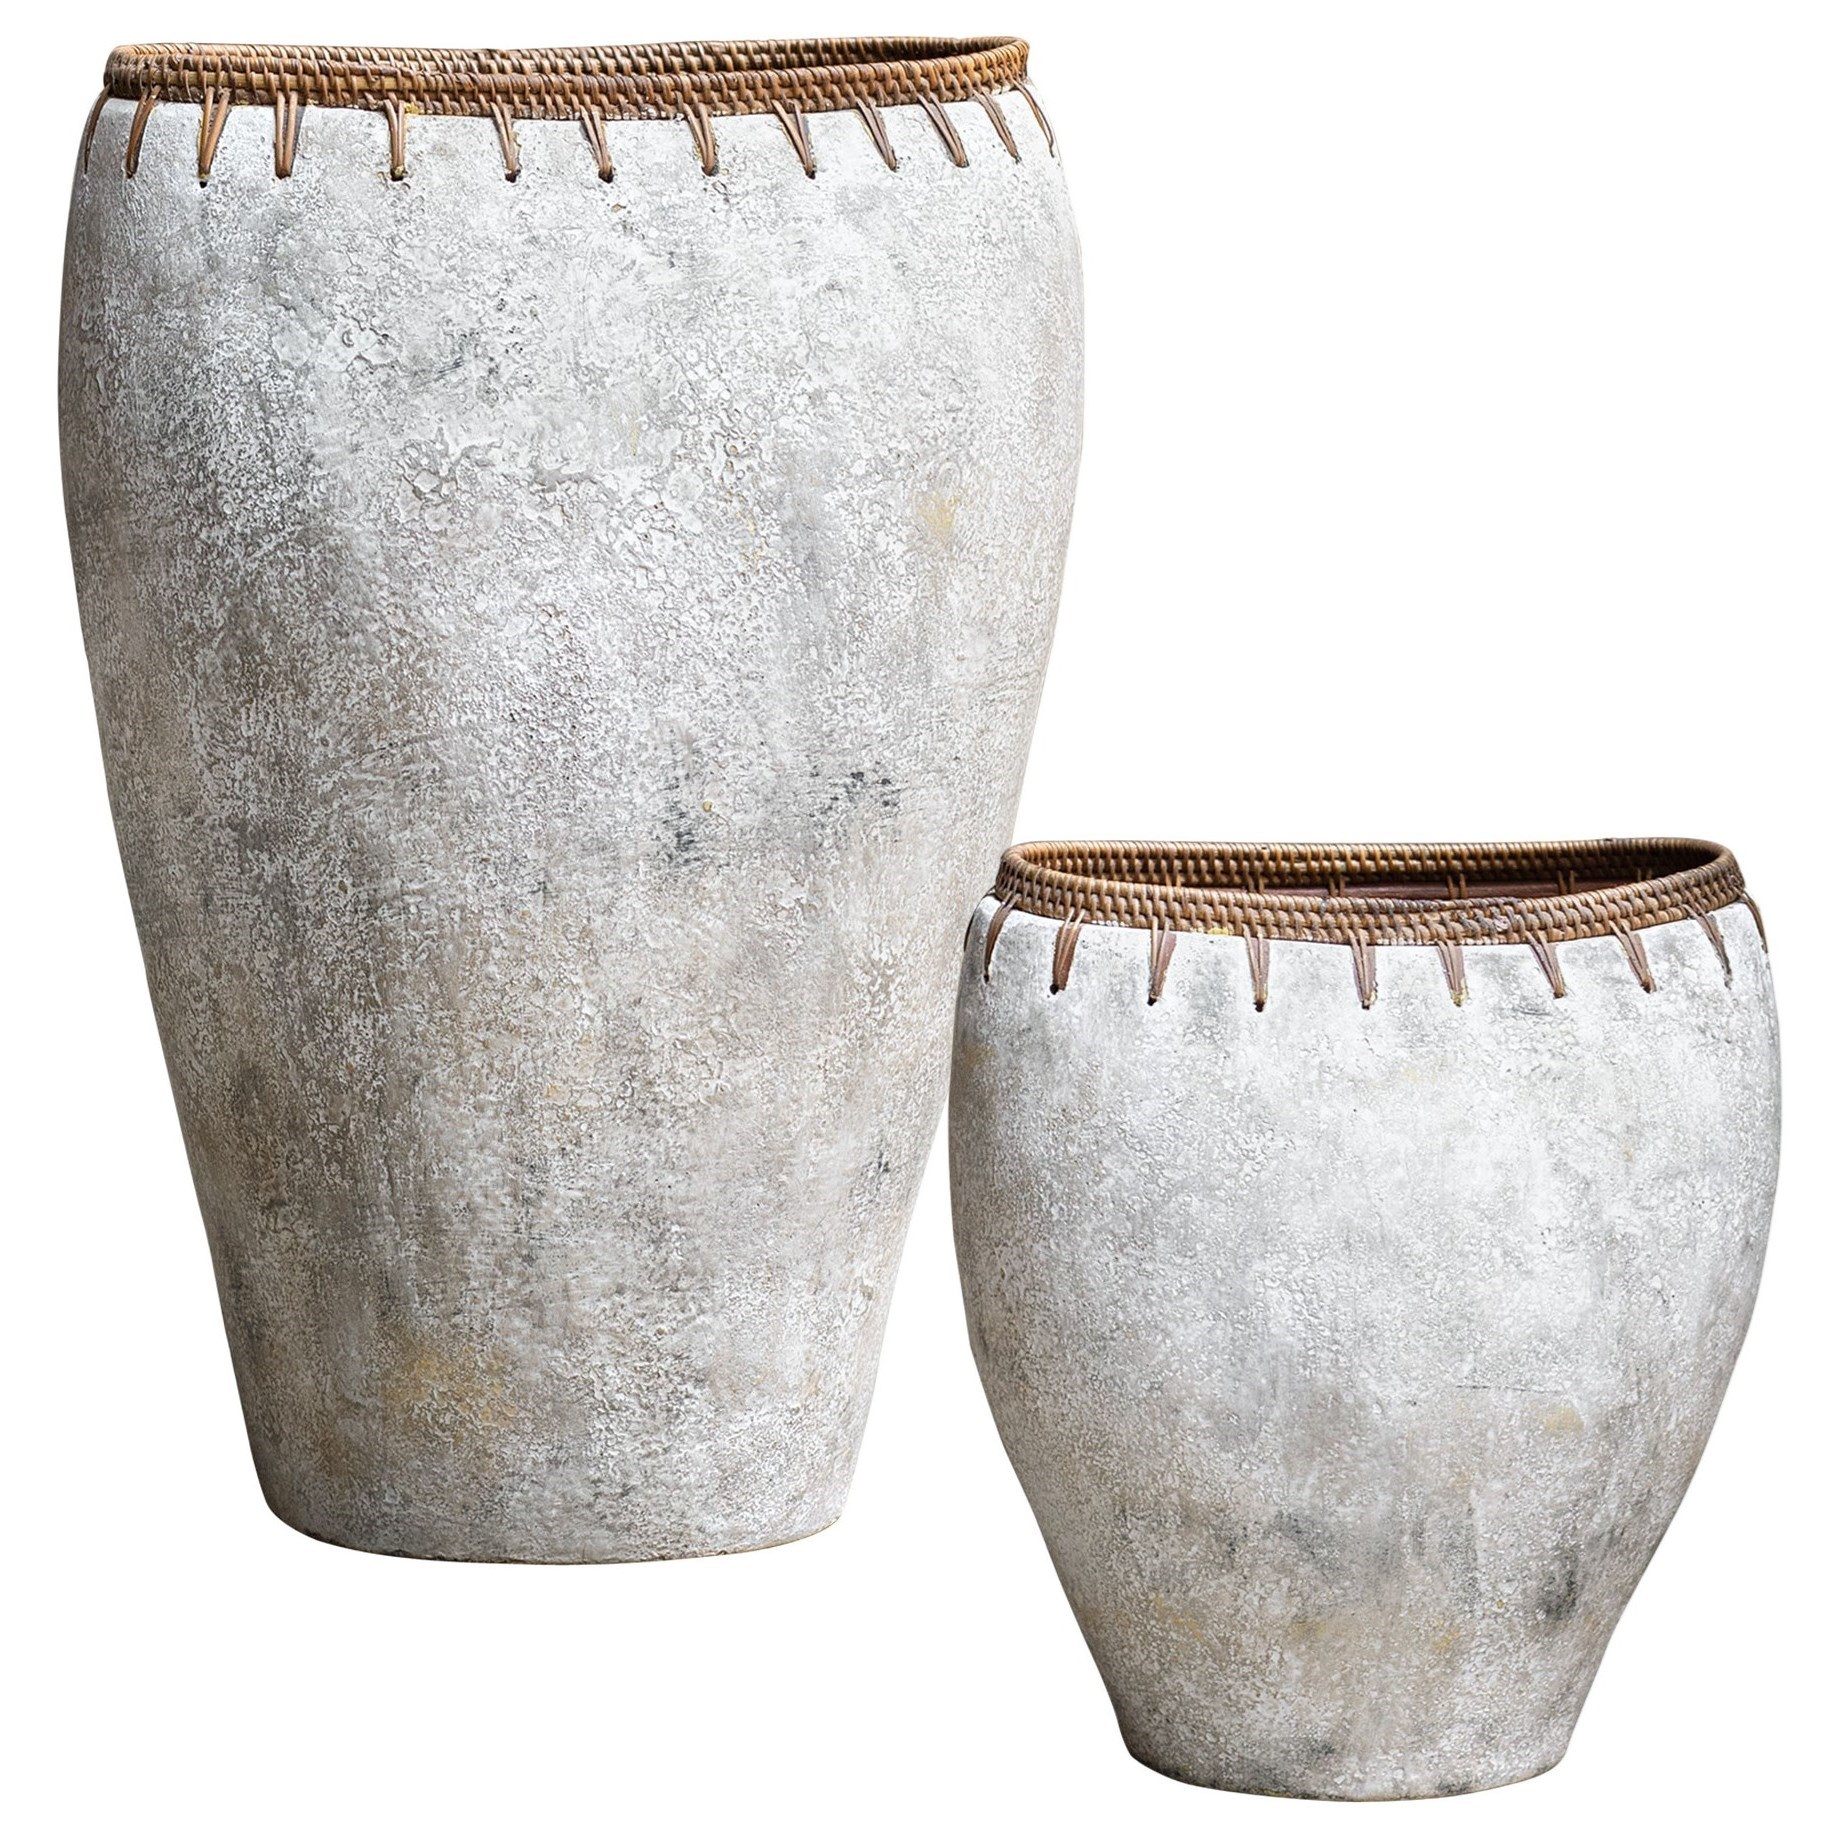 Accessories - Vases and Urns Dua Terracotta Vases, S/2 by Uttermost at Mueller Furniture